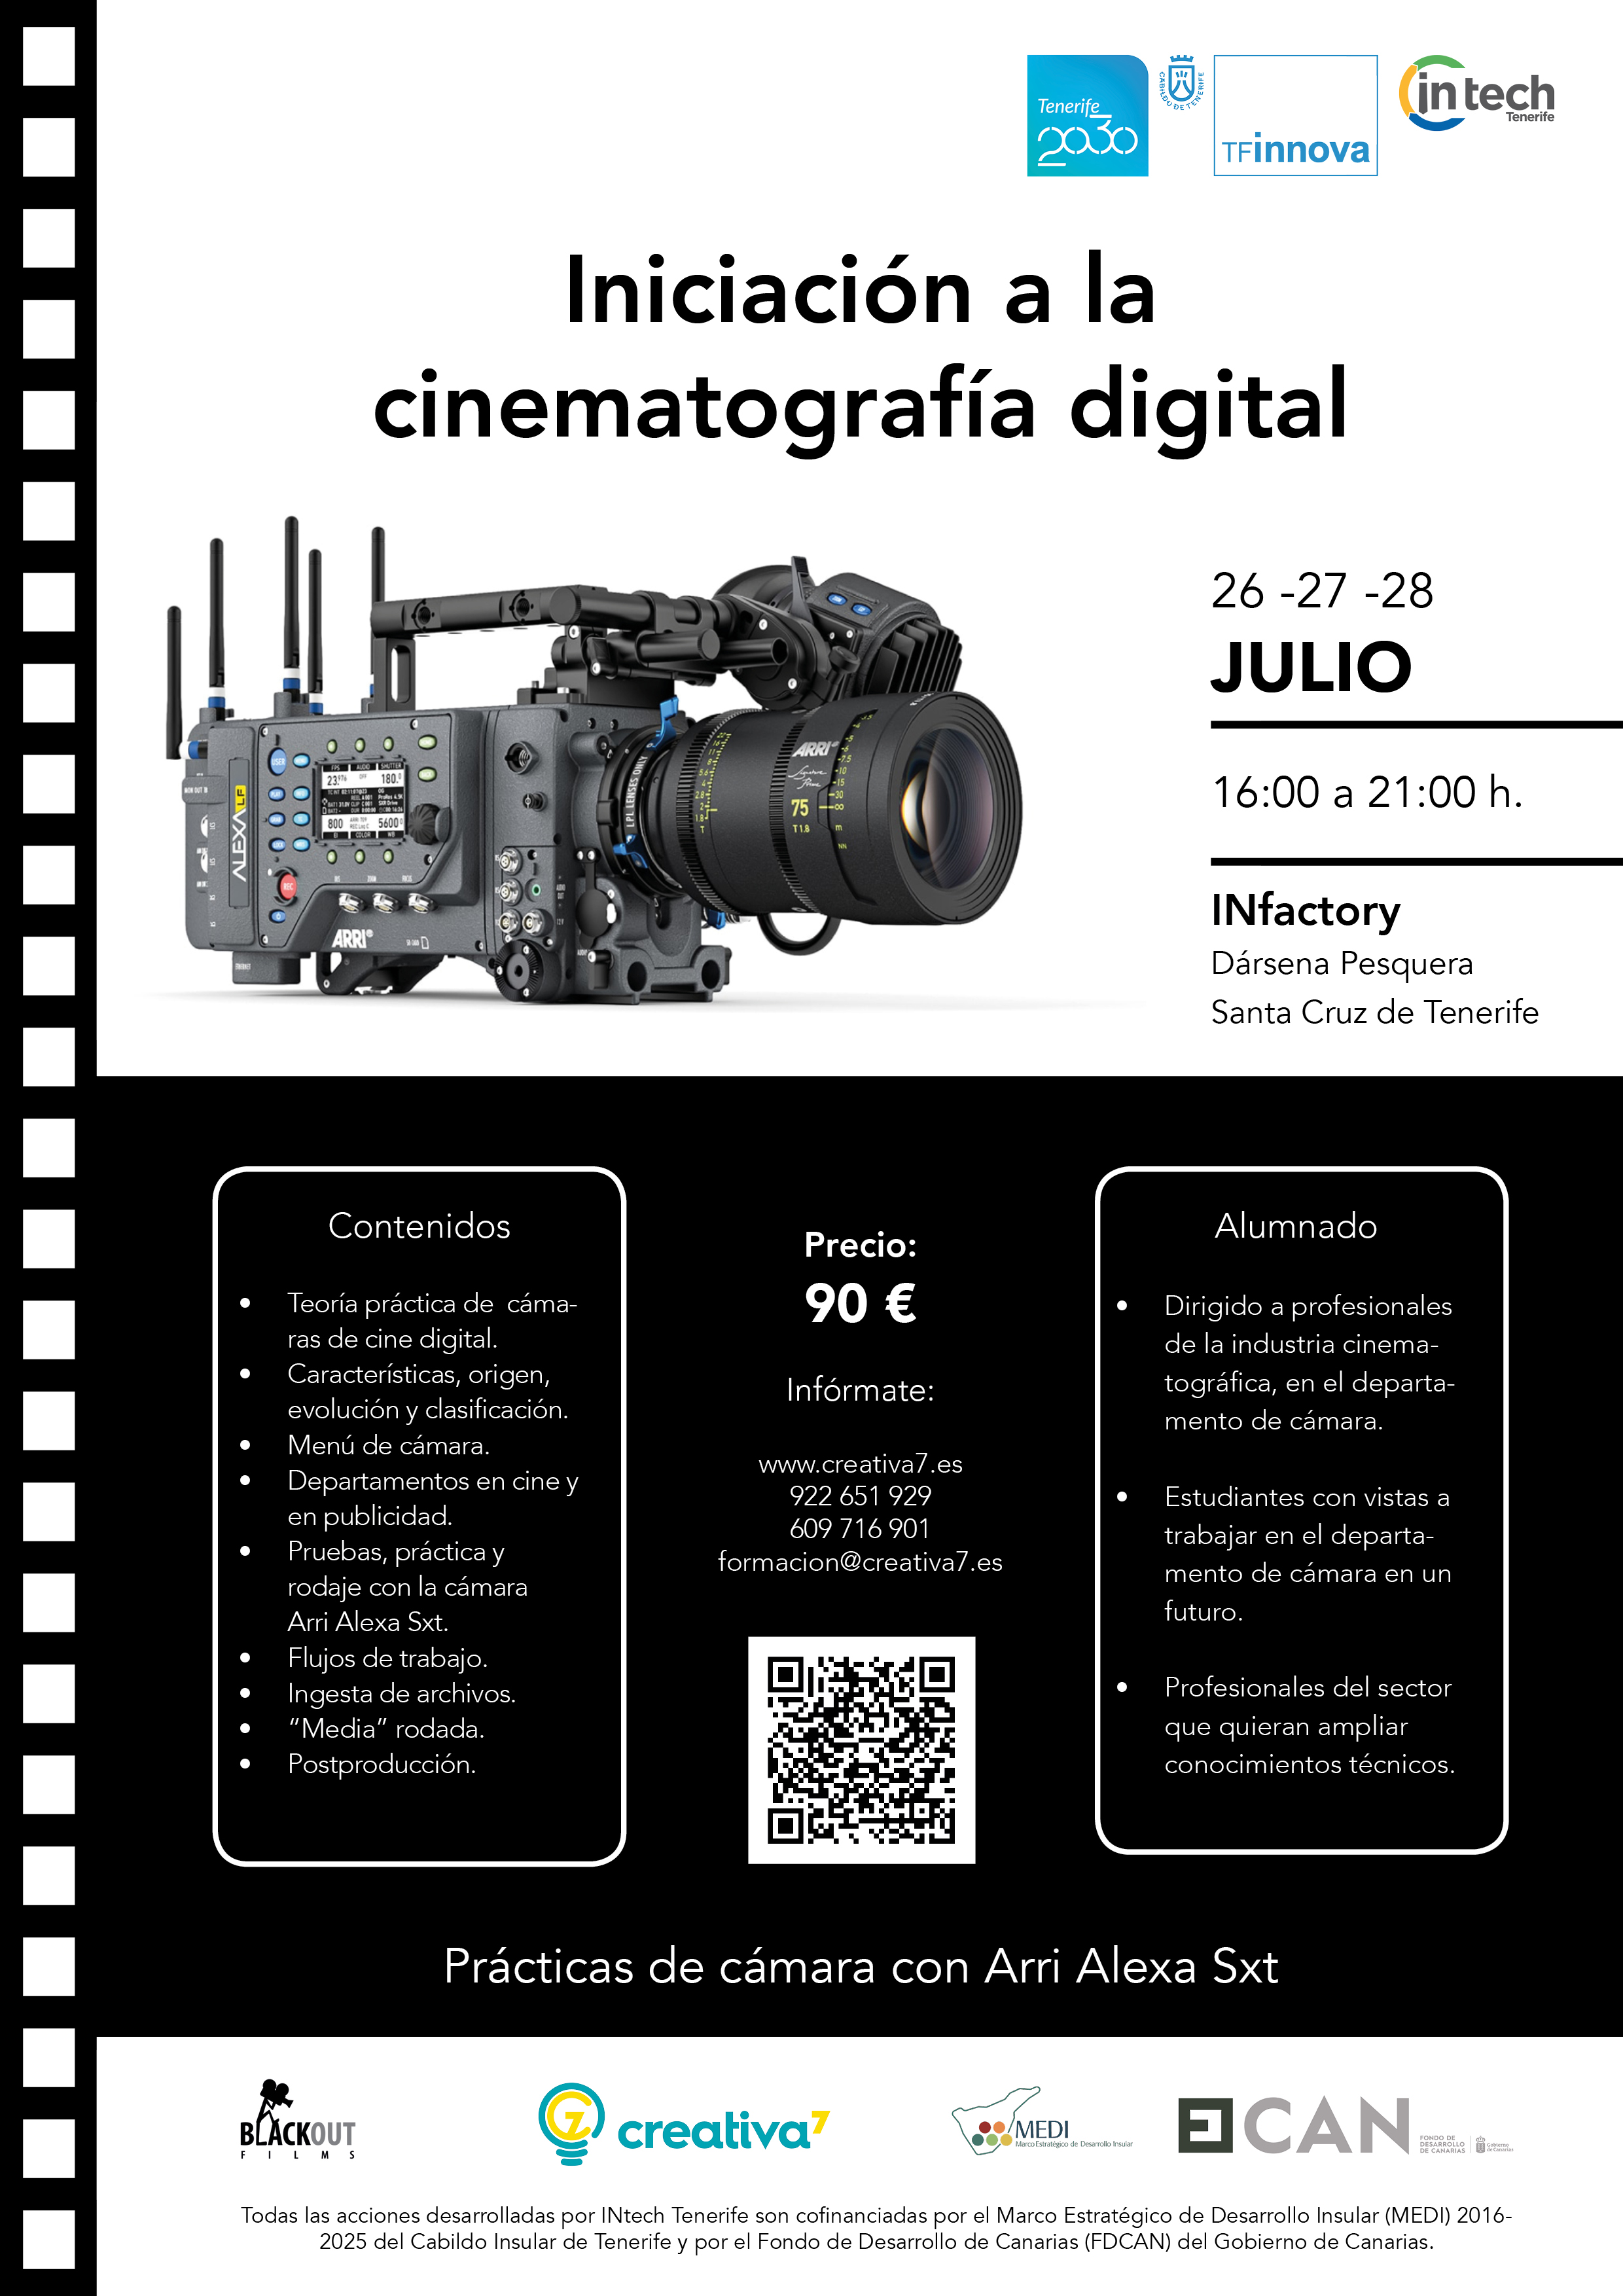 Iniciación a la cinematografía digital